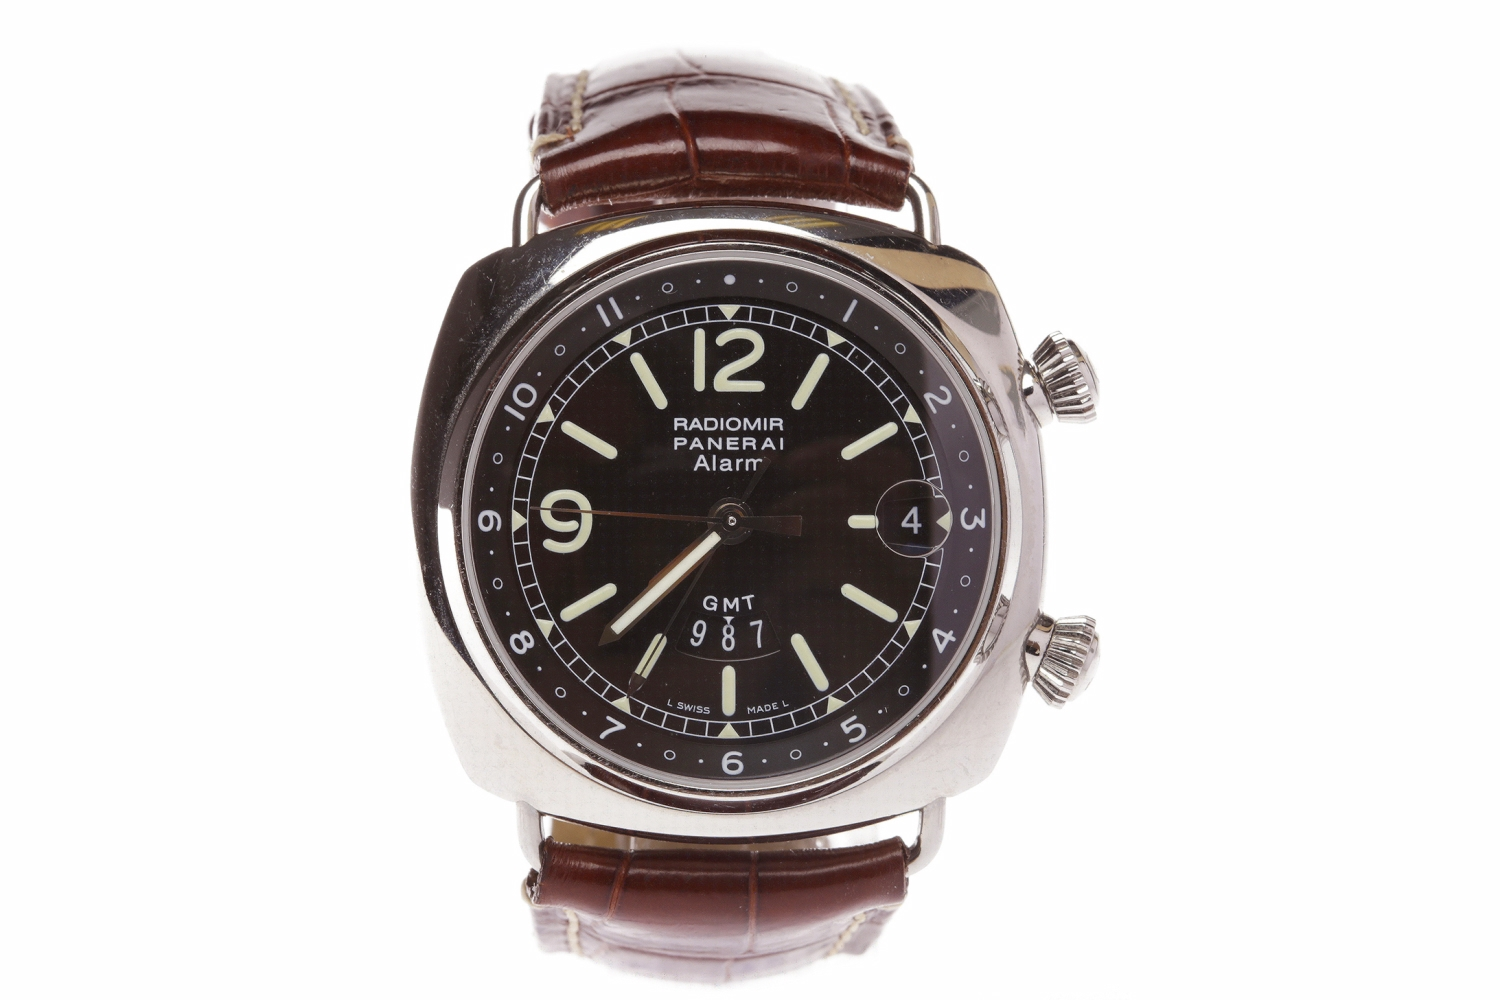 Lot 762 - GENTLEMAN'S RADIOMIR PANERAI ALARM GMT STAINLESS STEEL AUTOMATIC WRIST WATCH the round black dial